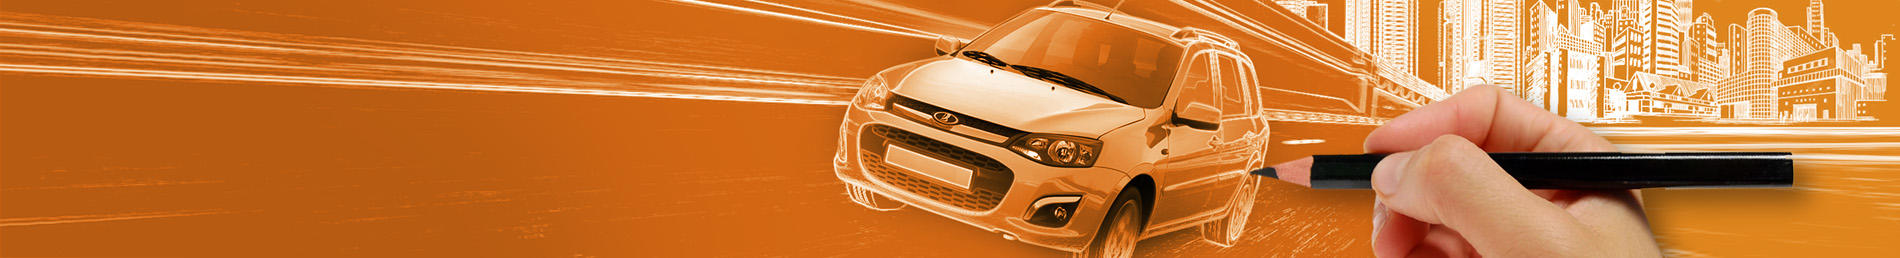 Engineering  services  for  automotive  industry